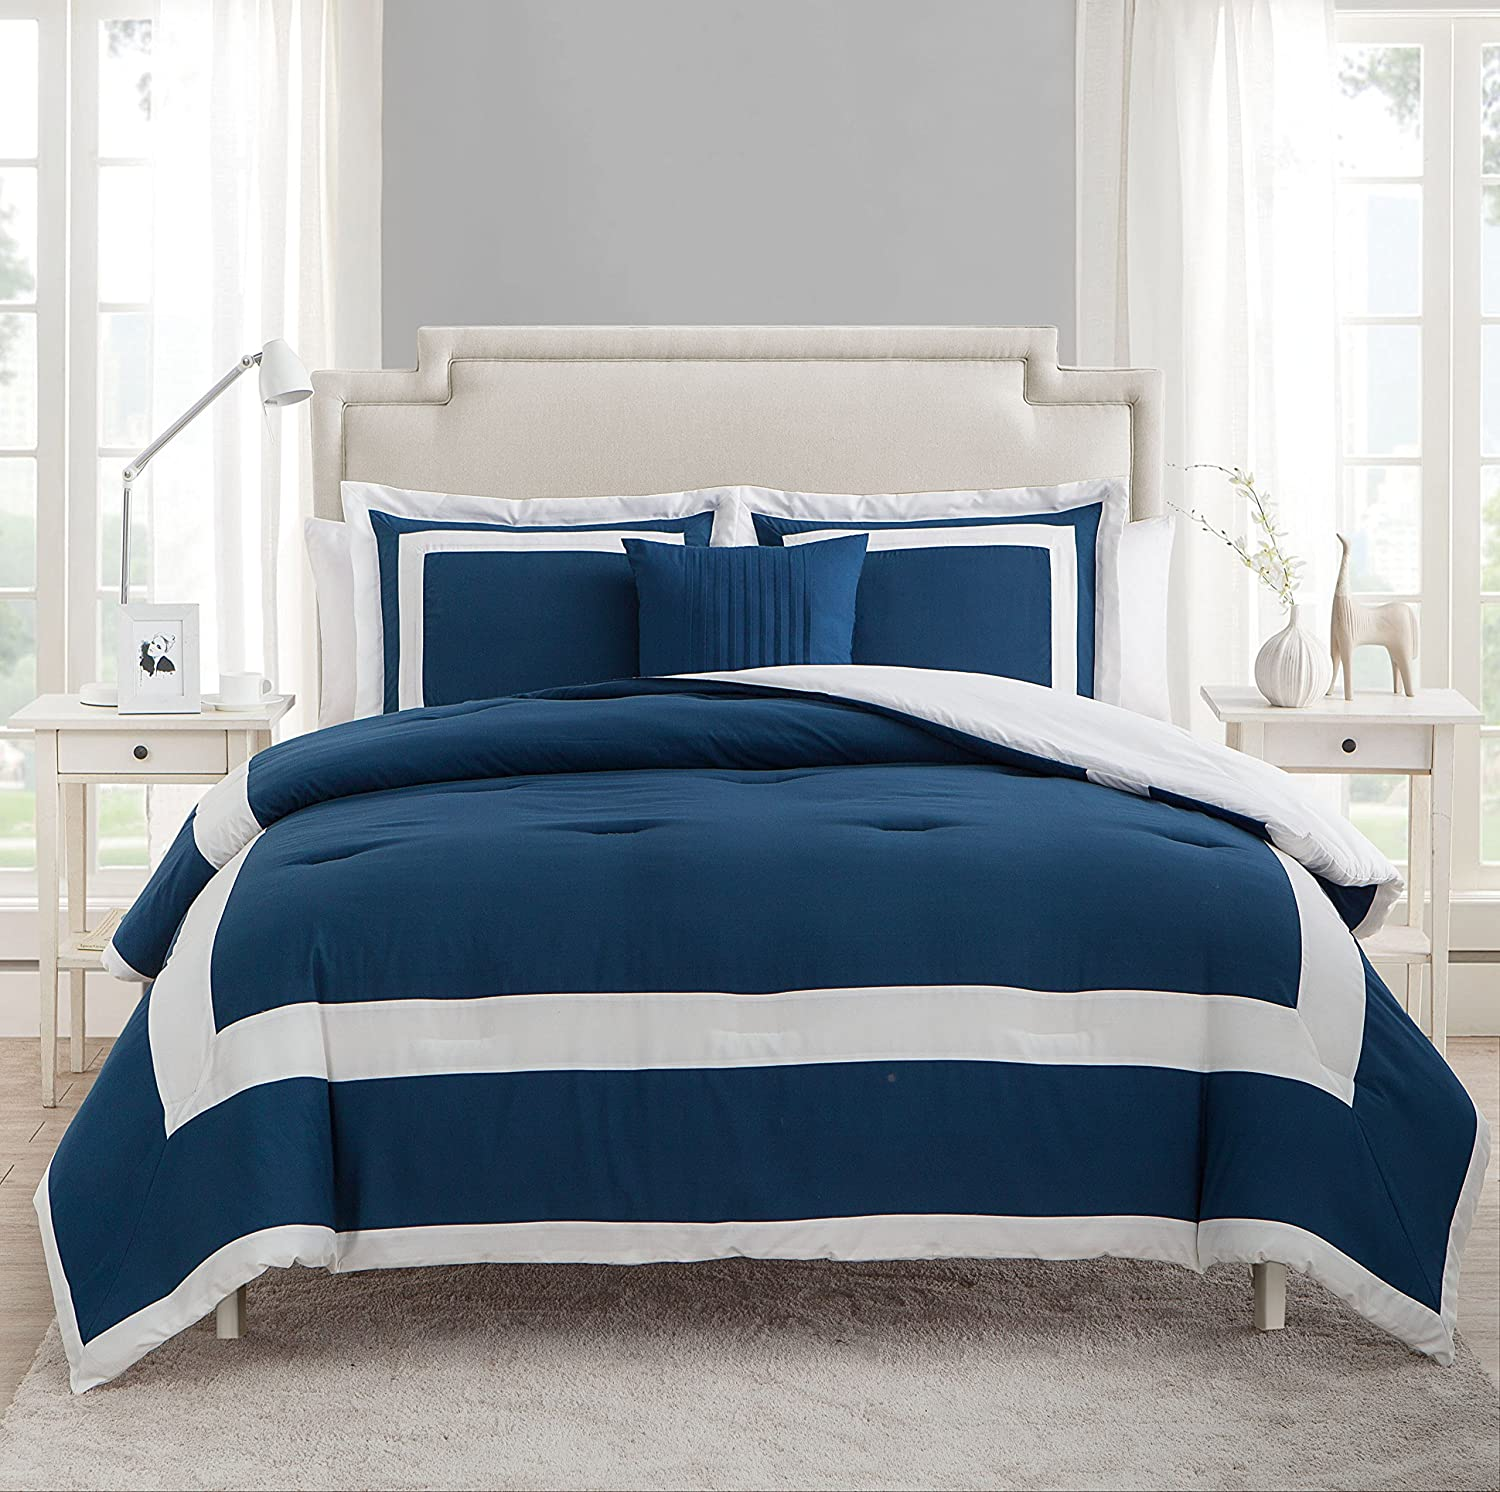 VCNY Home Avondale 4 Piece Comforter Set, King, bluee